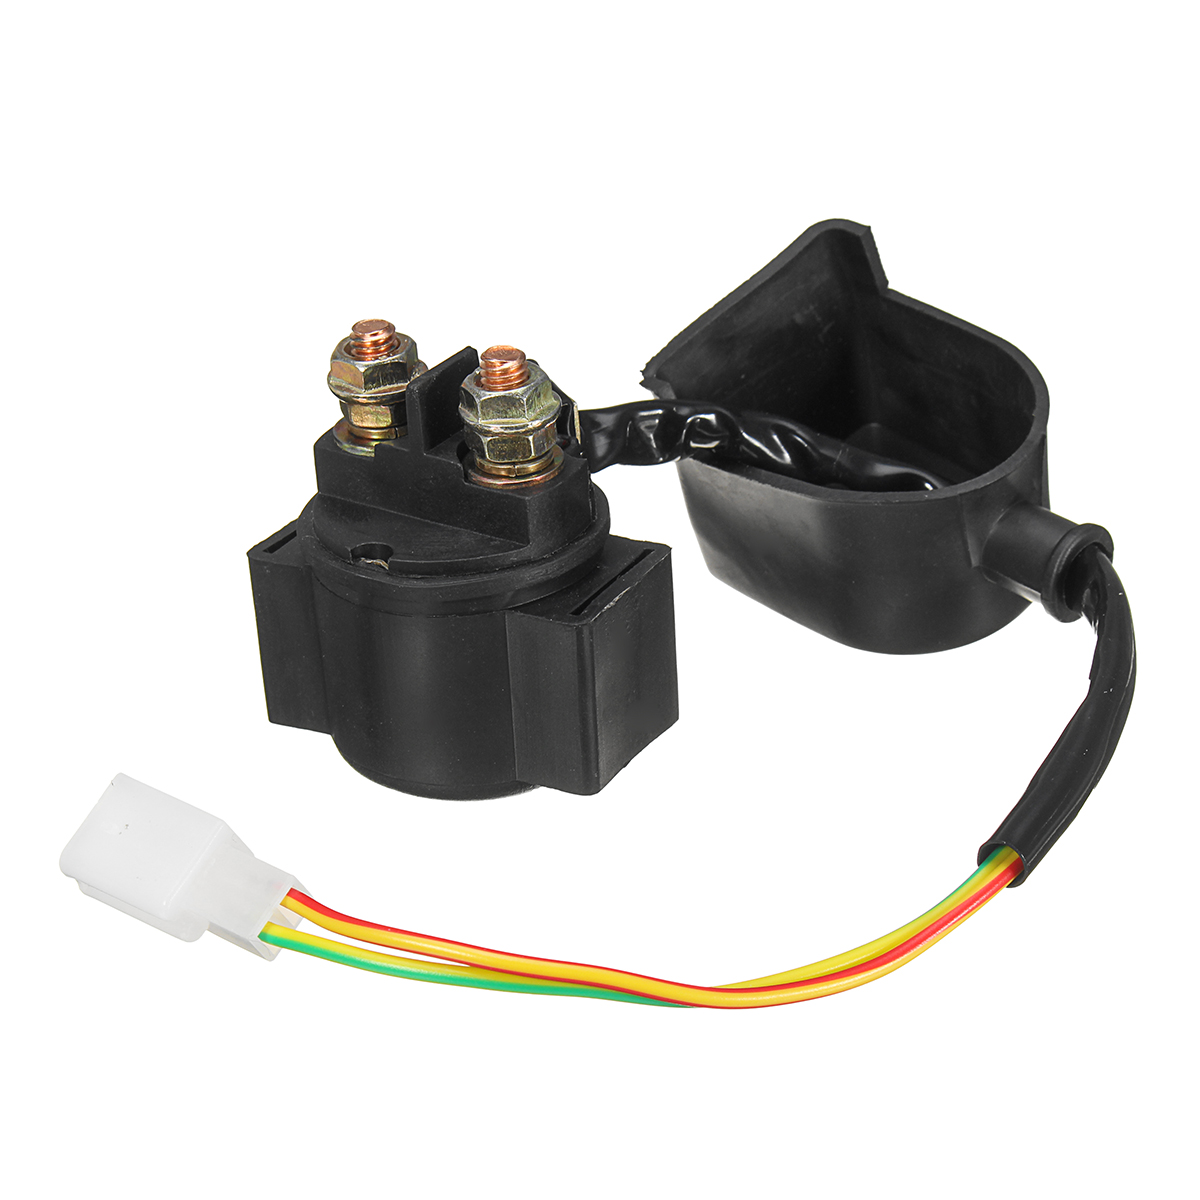 Atv,rv,boat & Other Vehicle Forceful 12v Starter Solenoid Relay For Atv Go Kart Pit Dirt Bike Quad 90cc 110cc 125cc Skilful Manufacture